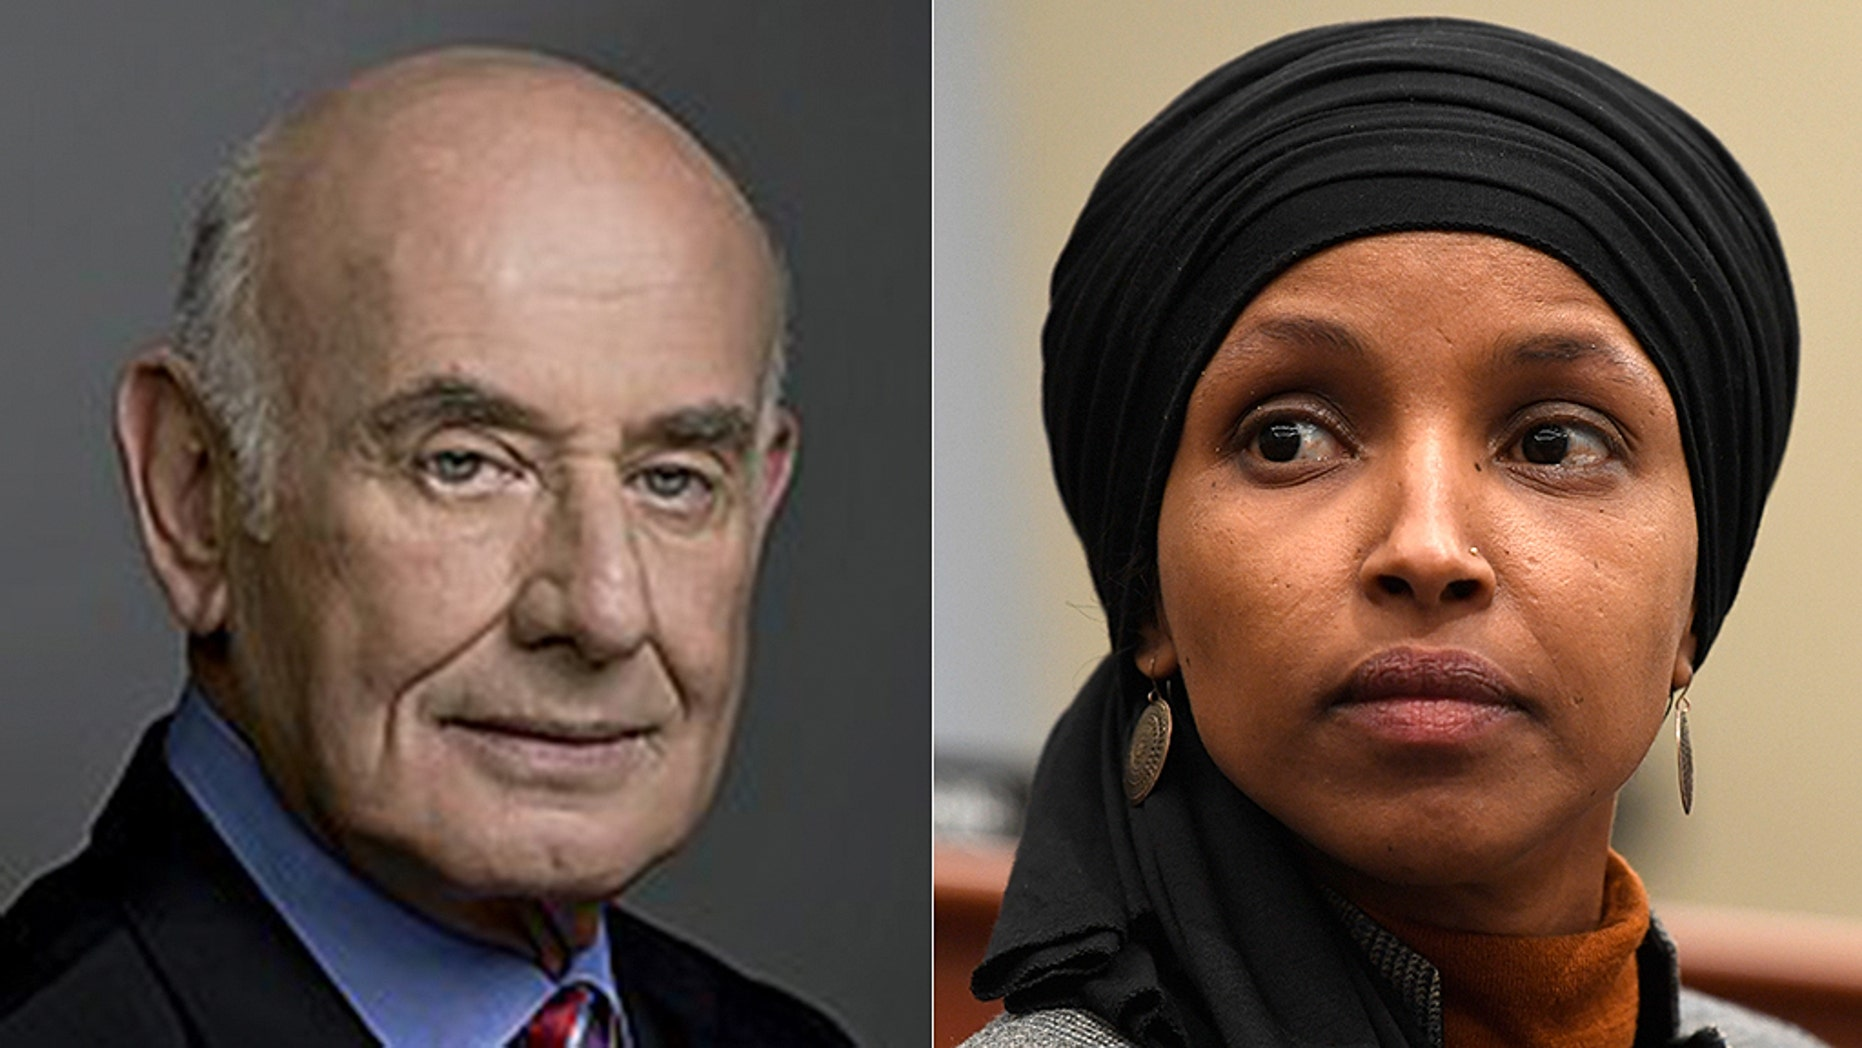 Yaakov Peri, the former head of the Israeli security agency Shin Bet and Rep. Ilhan Omar